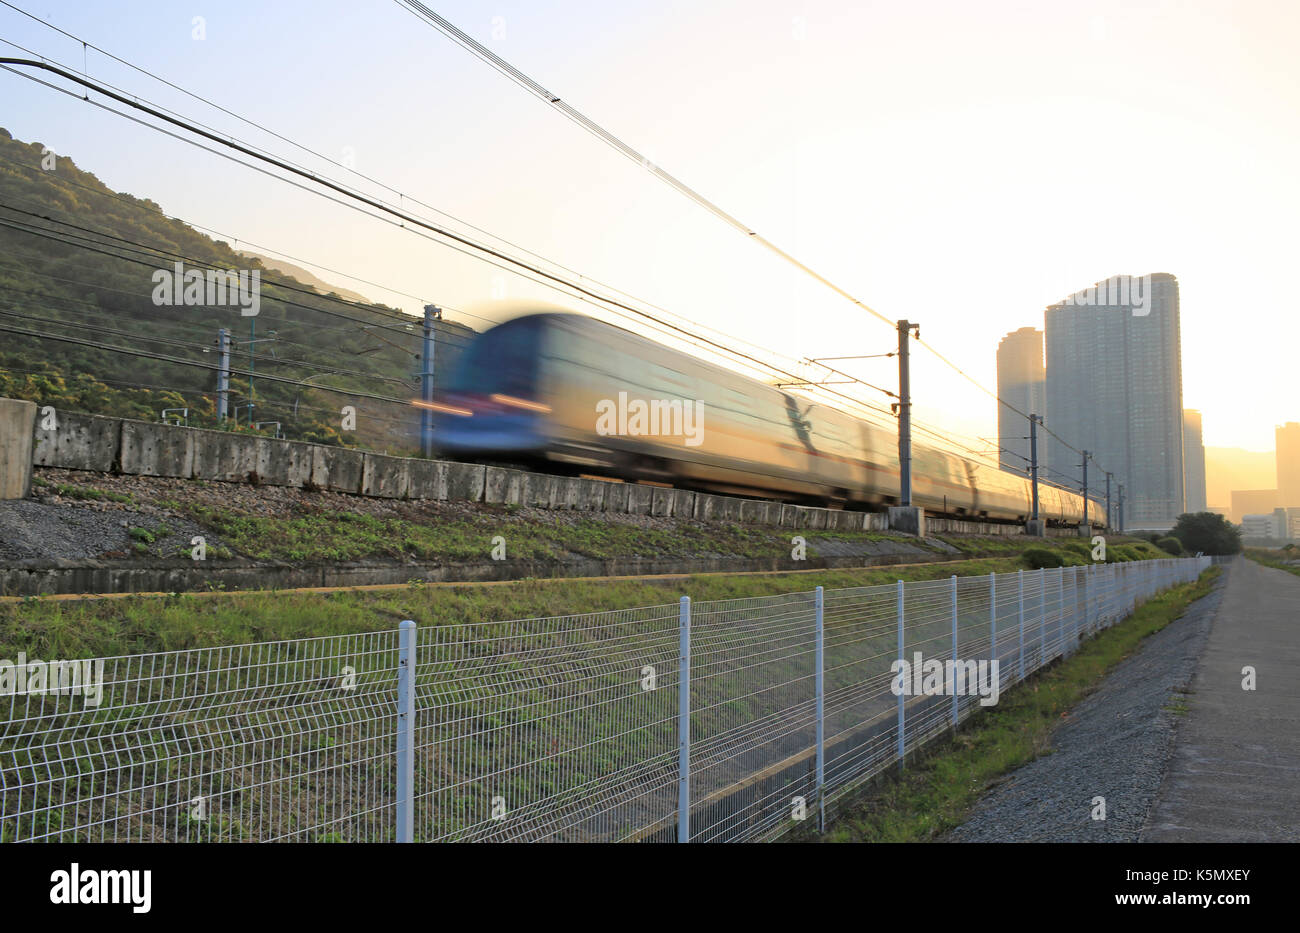 Good Morning :  under the bright, first train running / speed up on railway in hong kong, china, Tung Chung area, Lantau Island cityscape - Stock Image